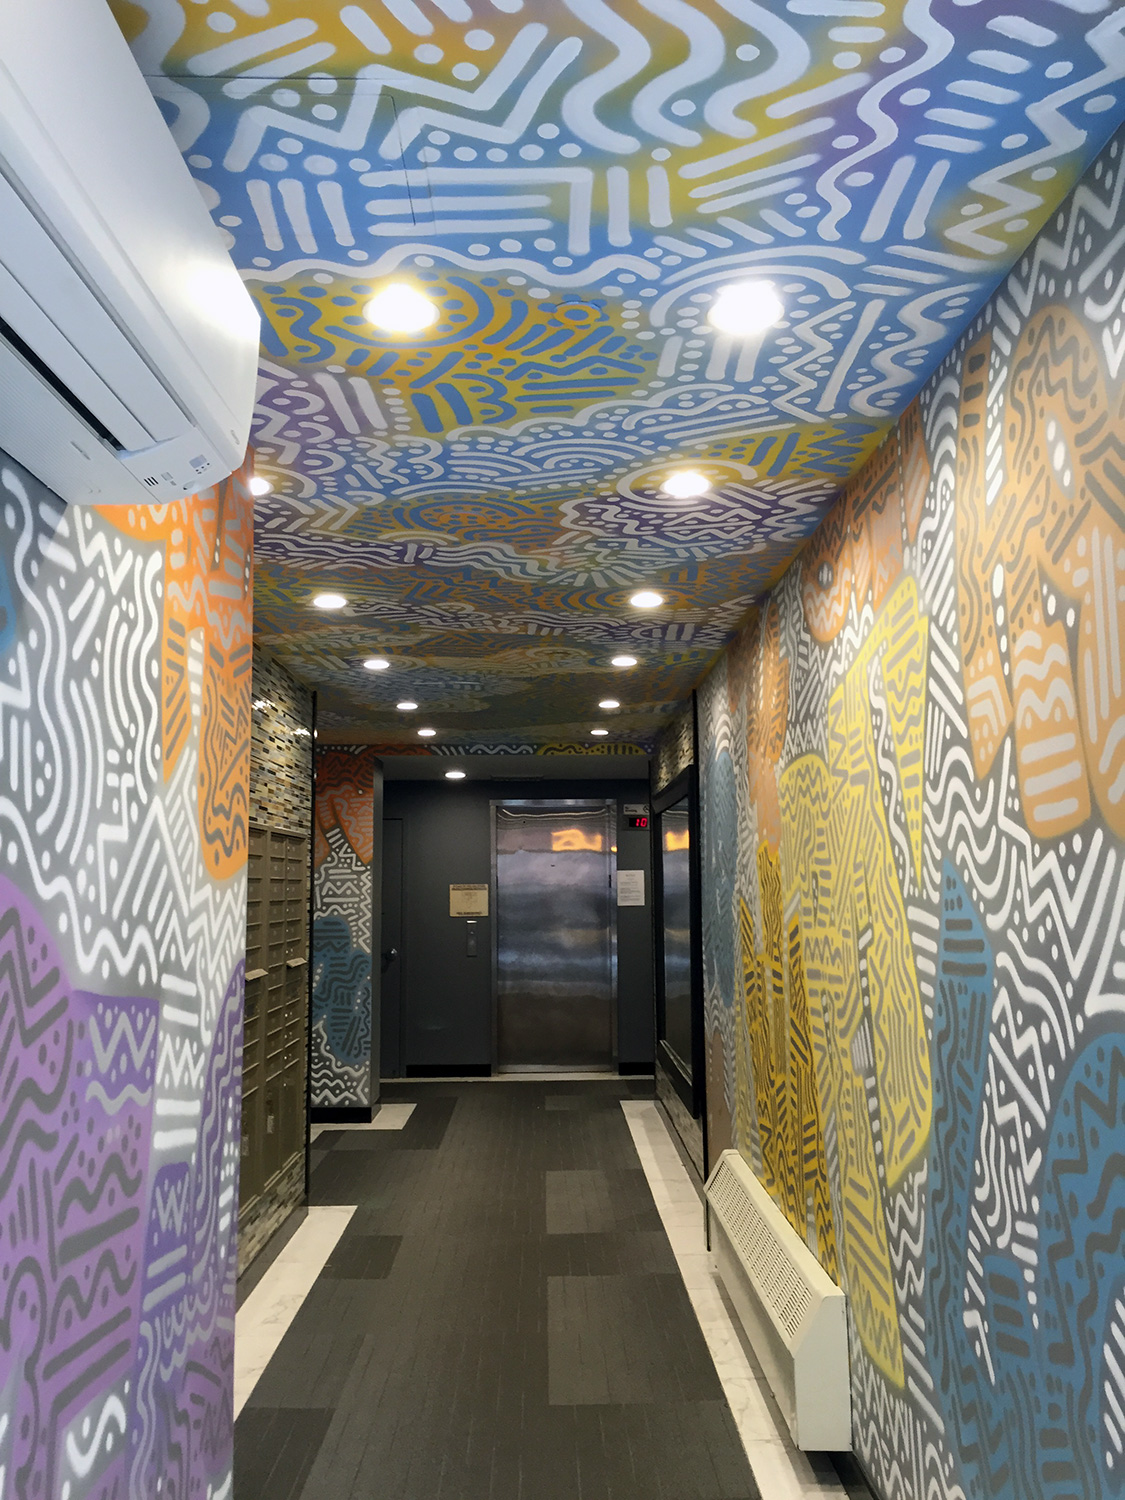 Harlem Residential Lobby - Keith Haring Style Mural